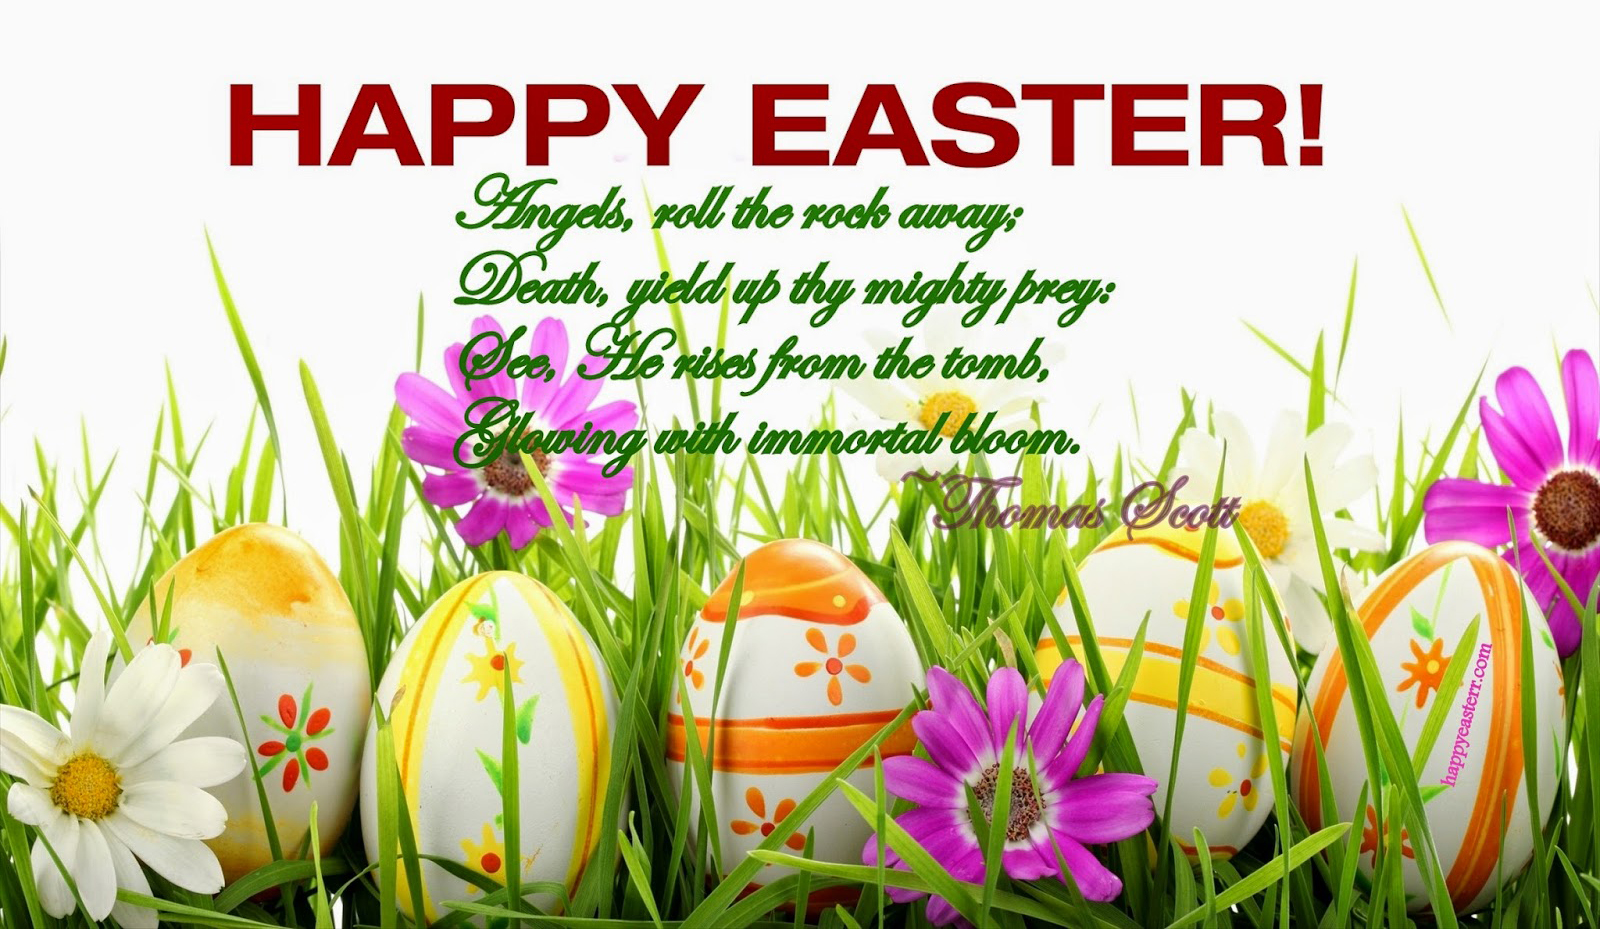 Happy Easter 2019 background images